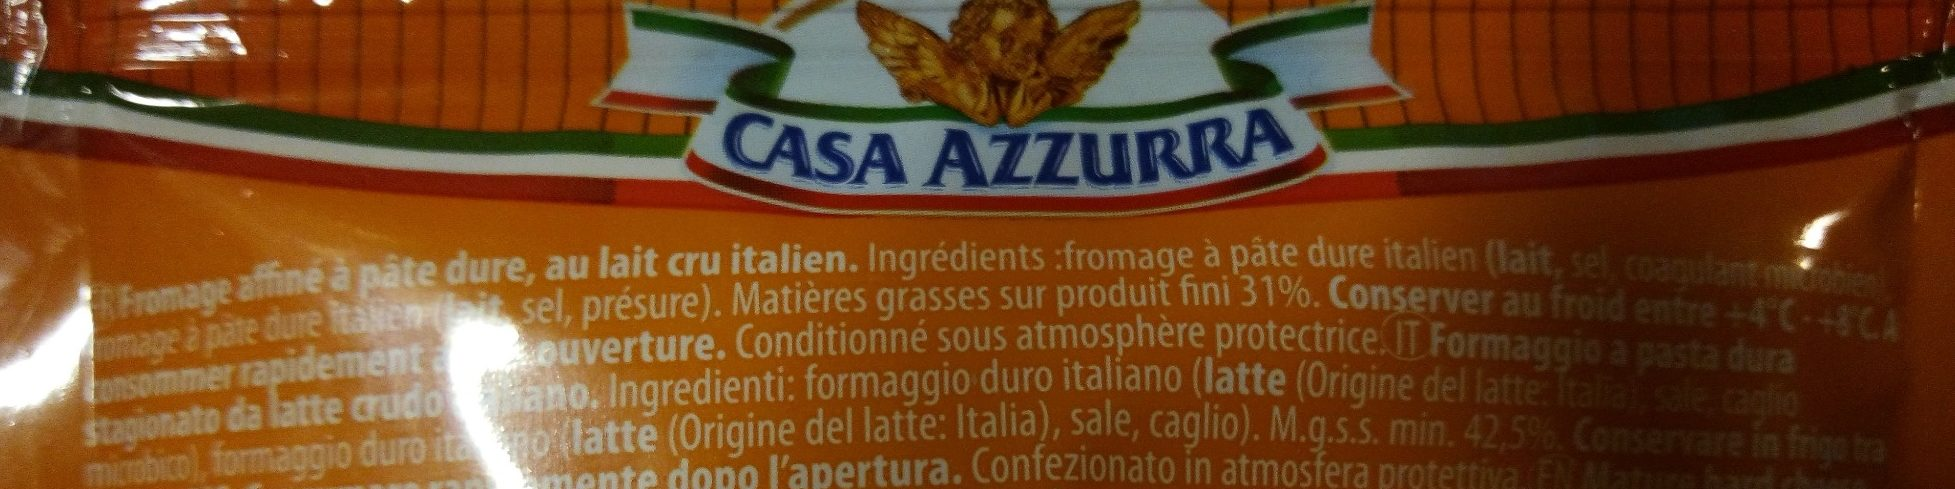 Gran Casa Azzurra - Ingredients - fr